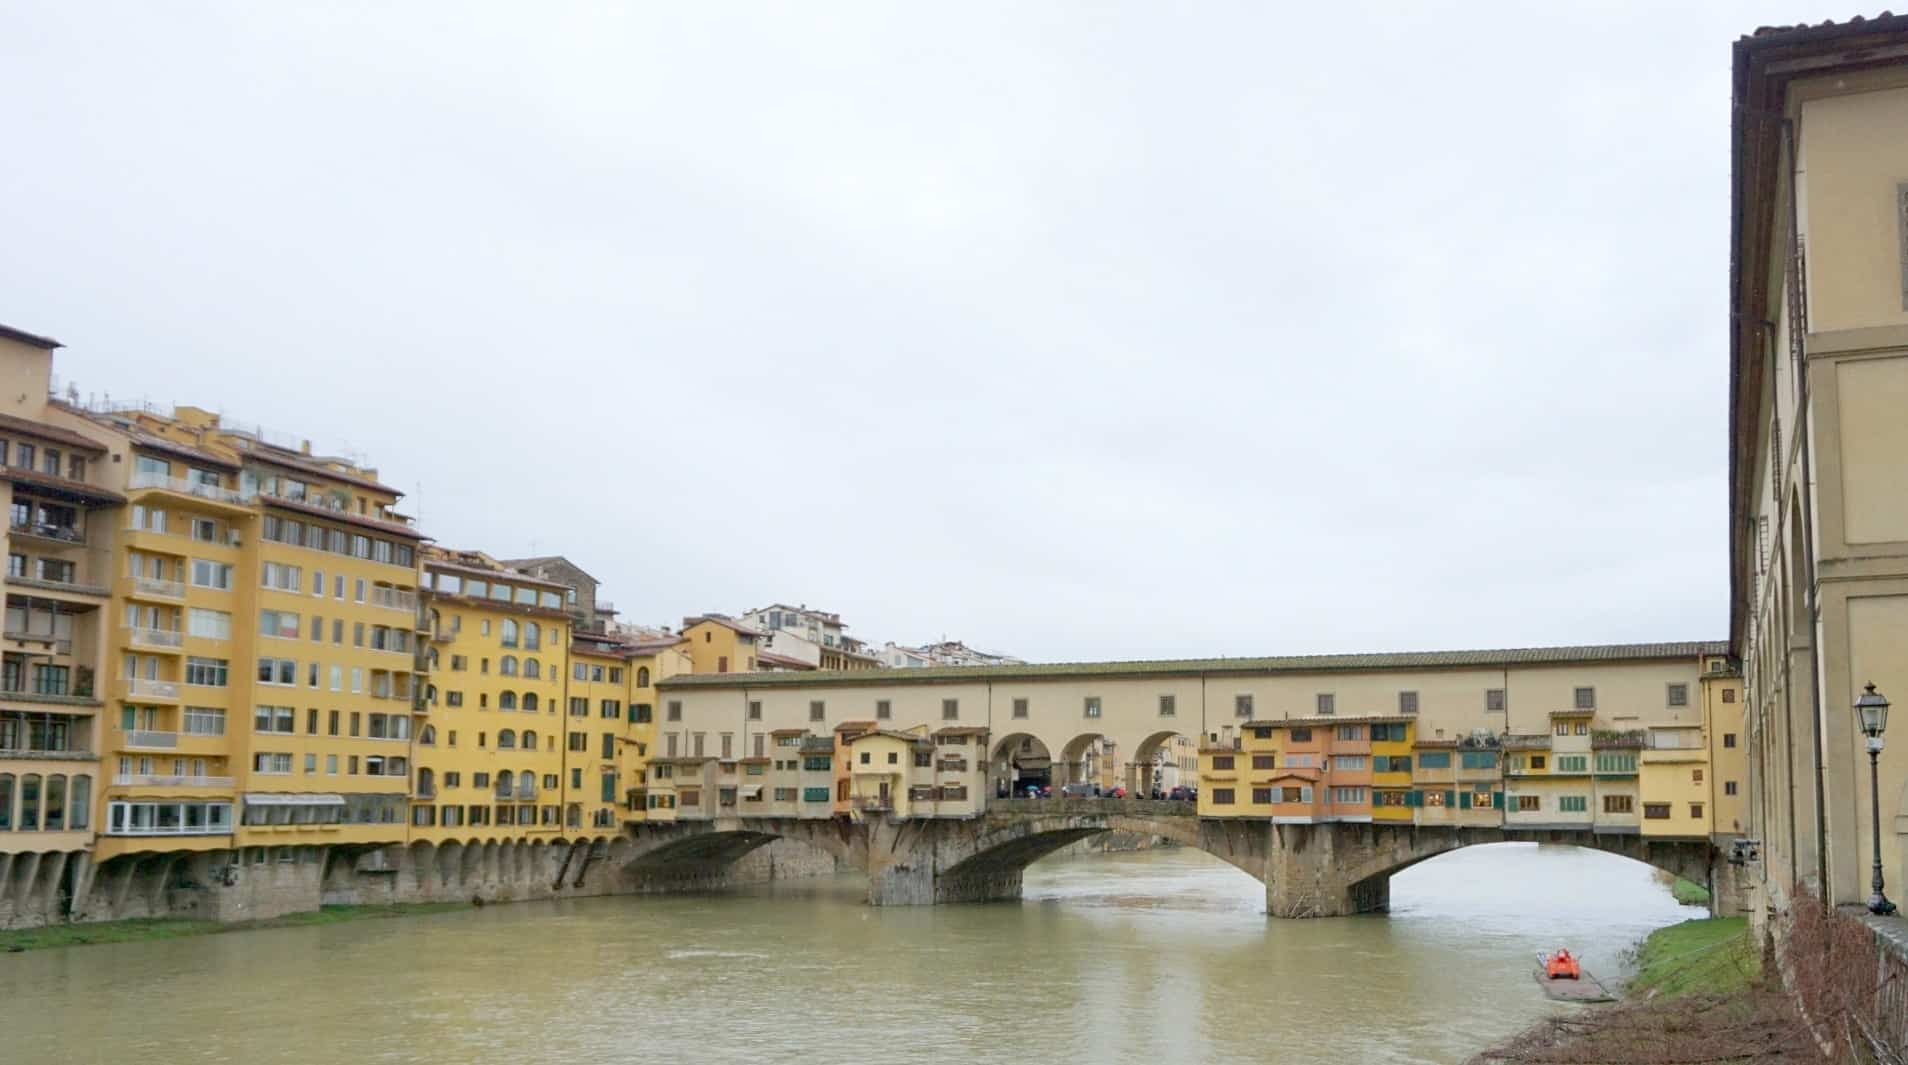 A guided tour can be tailored around the Ponte Vecchio Bridge